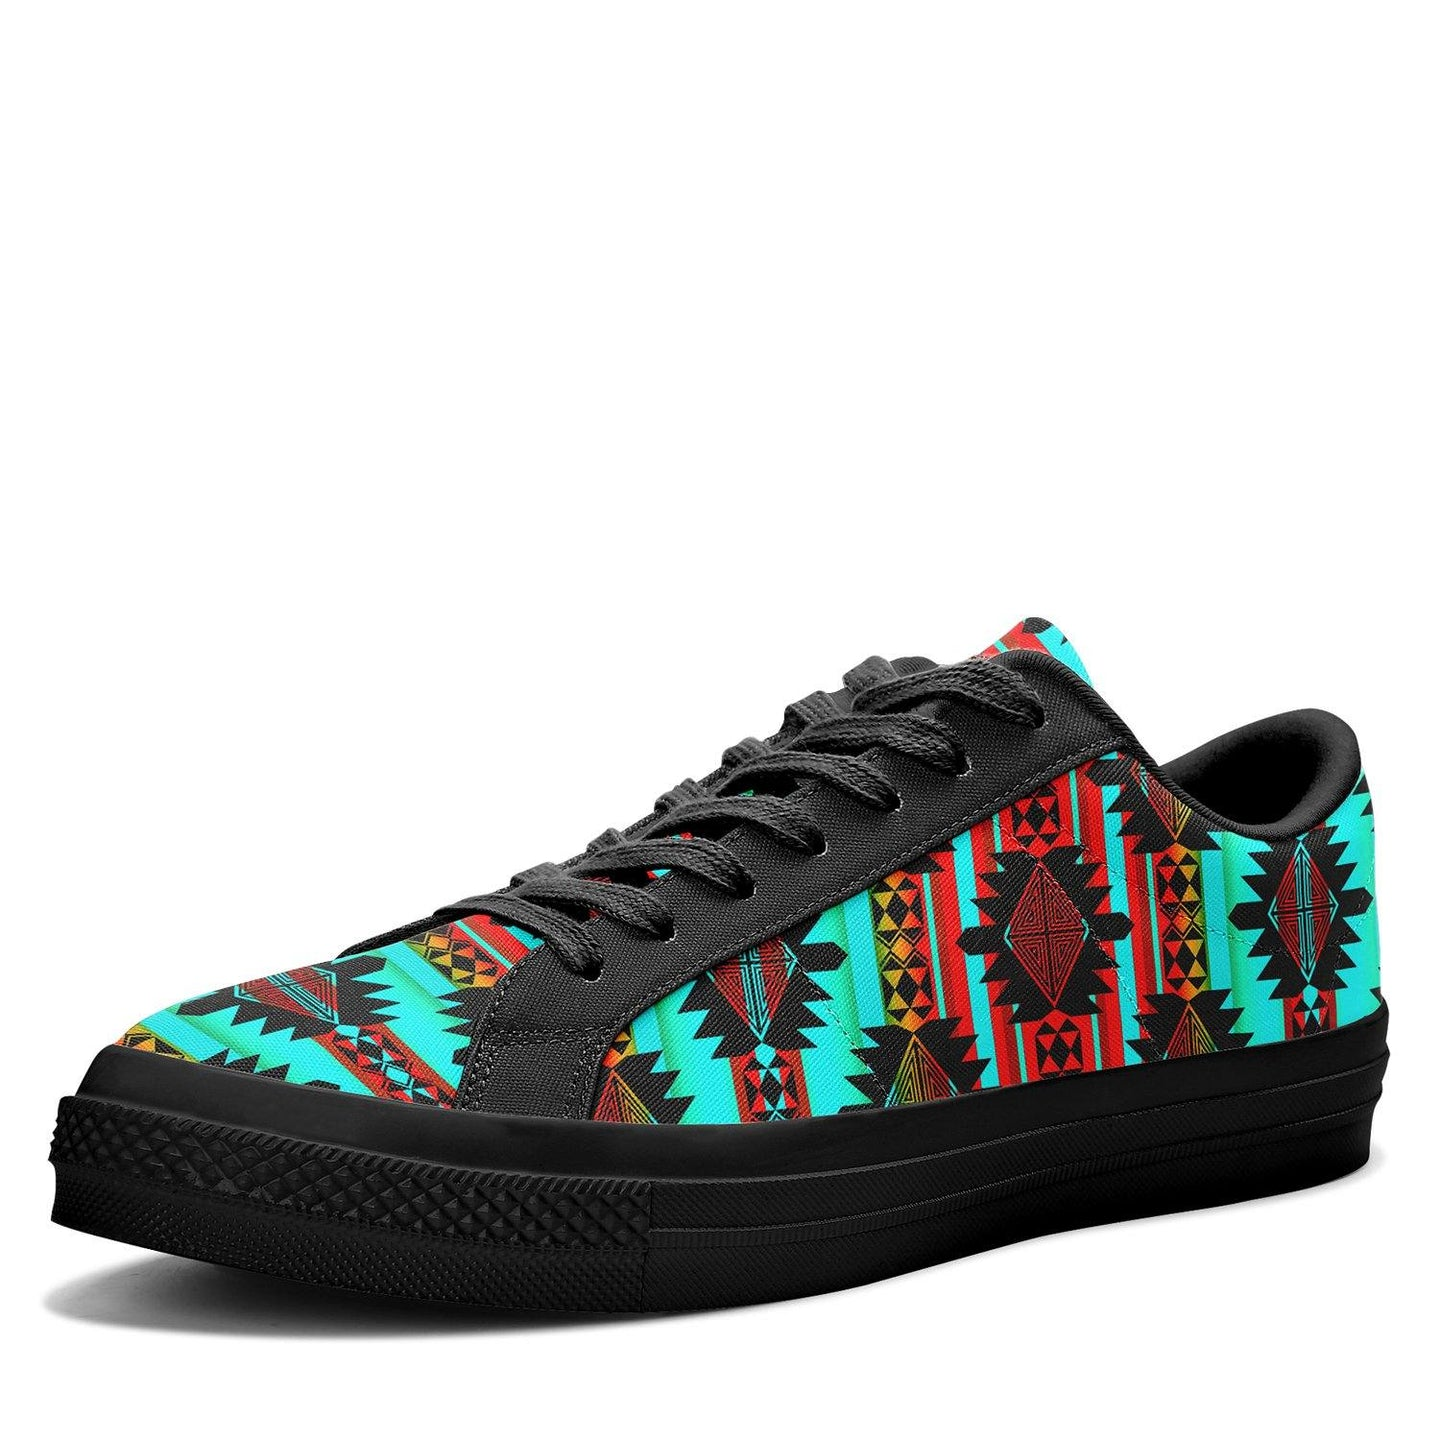 Okotoks Arrow Aapisi Low Top Canvas Shoes Black Sole 49 Dzine